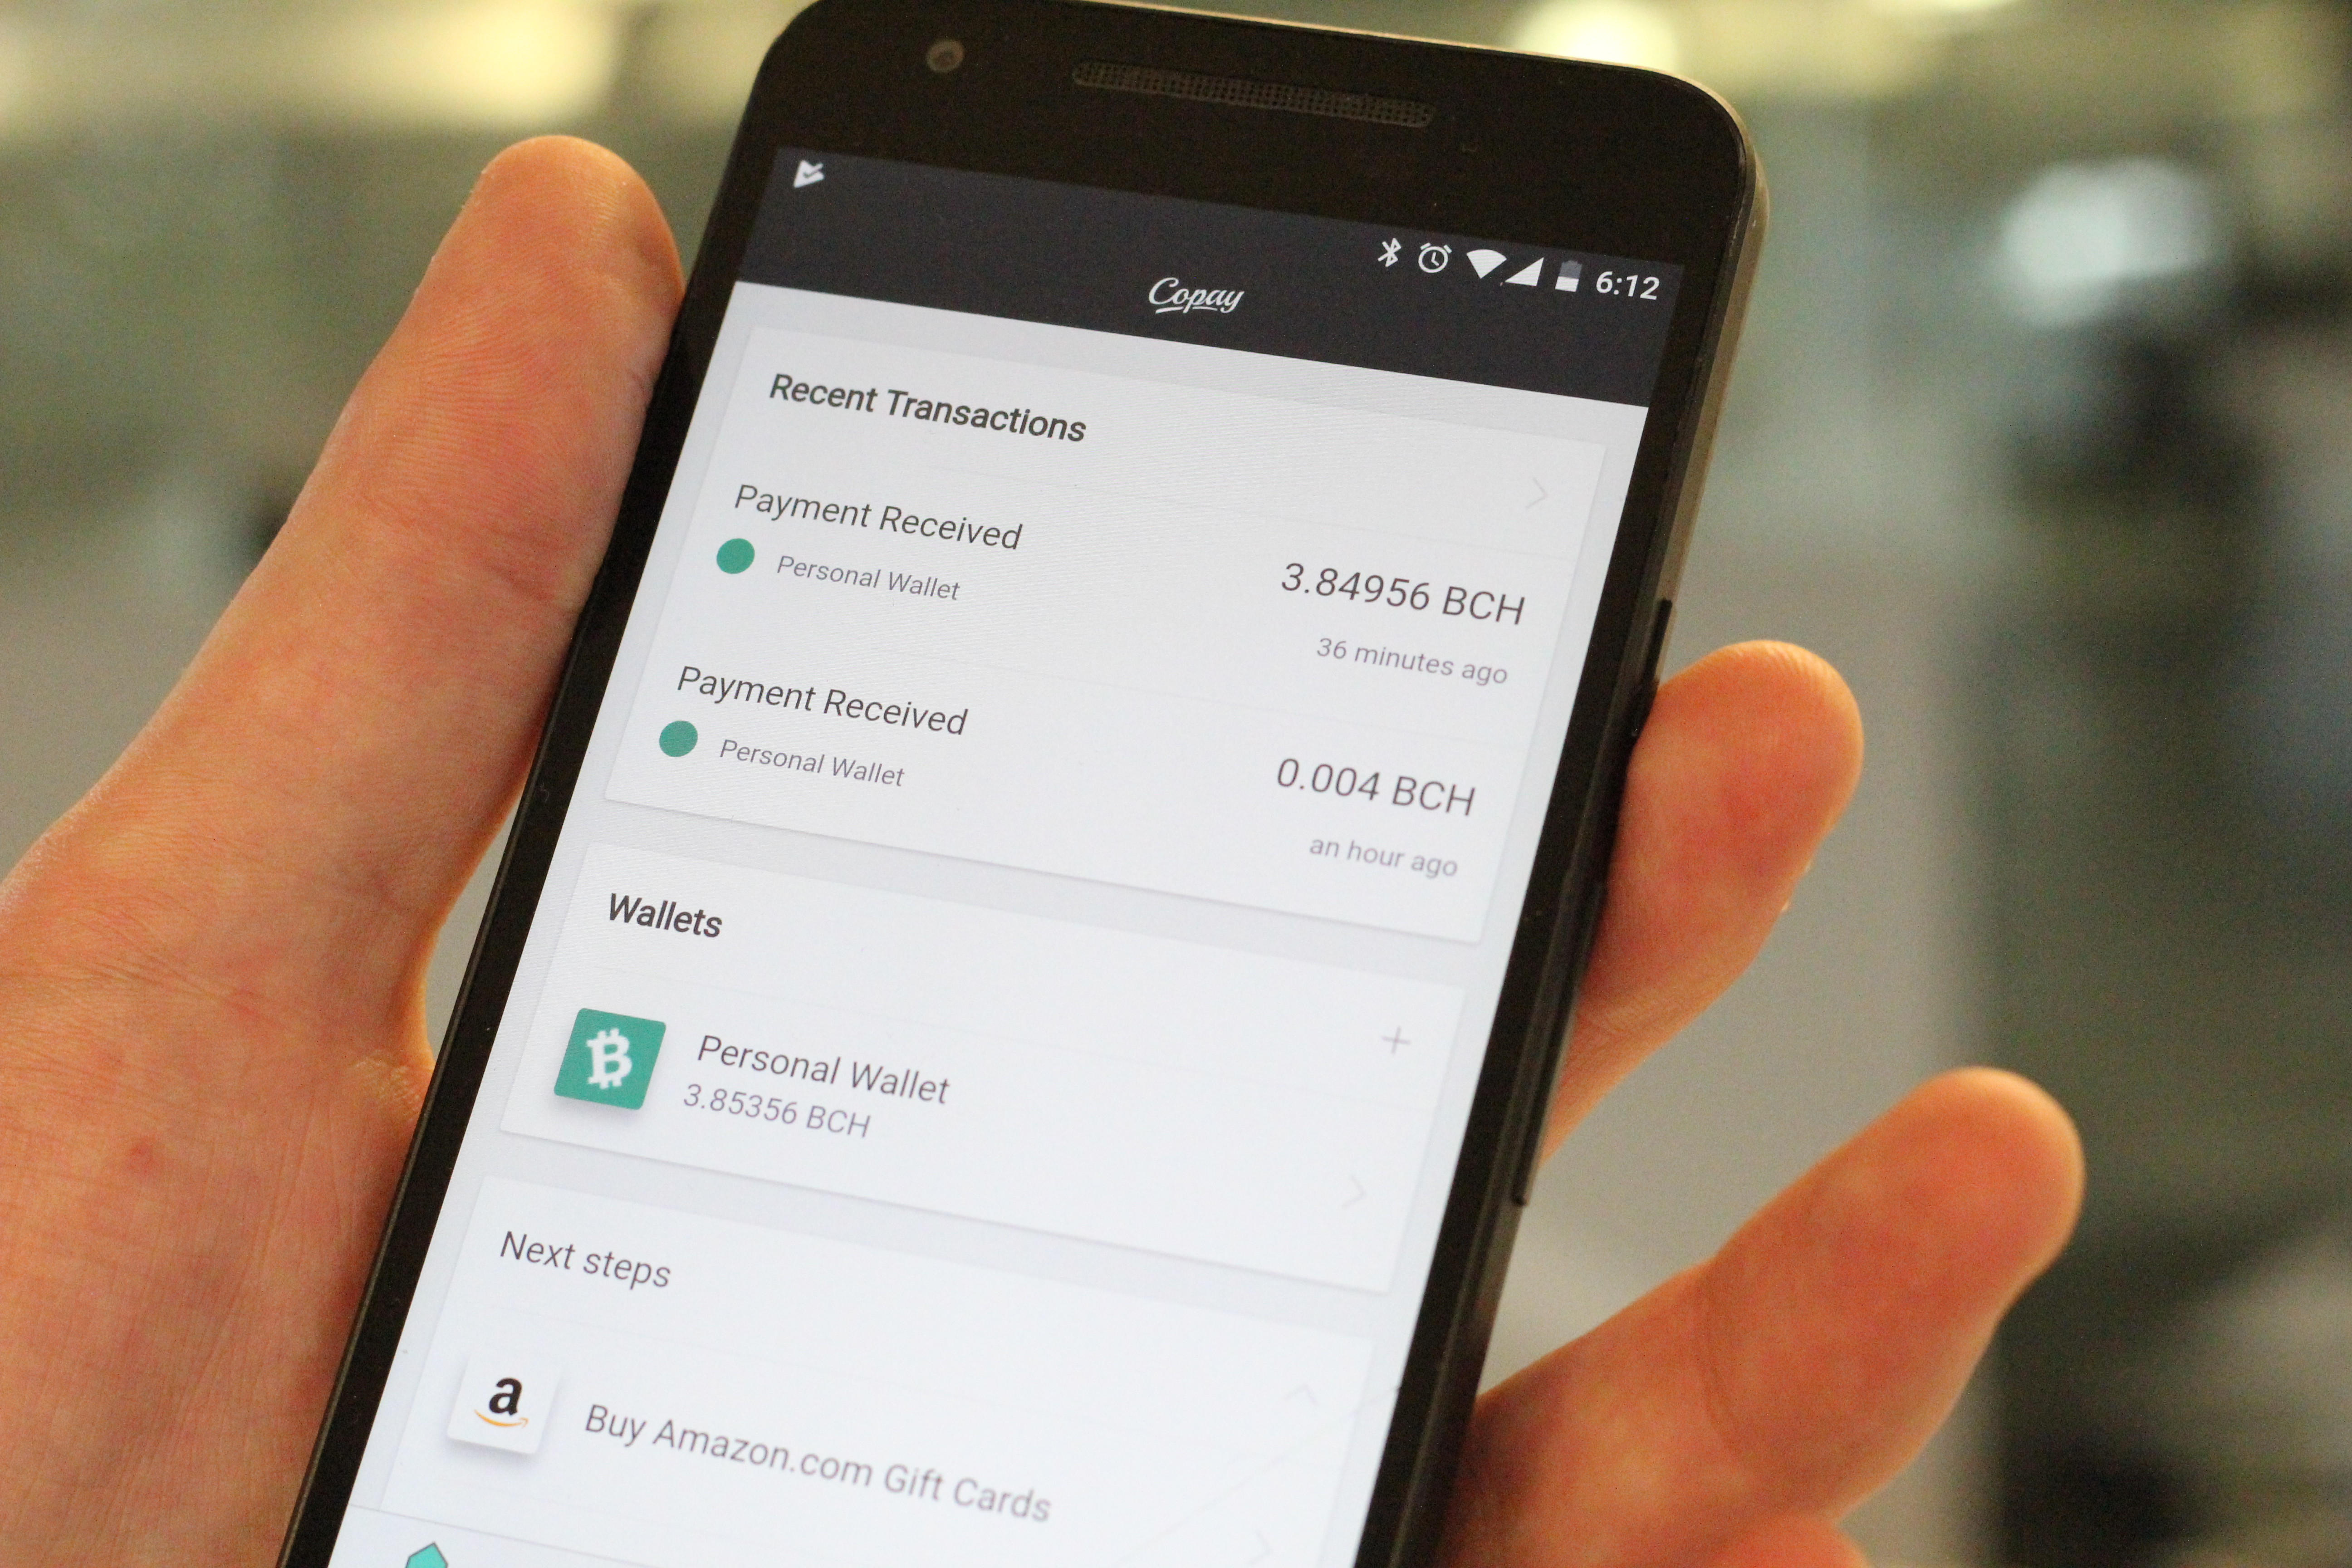 BitPay and Copay Bitcoin Cash Wallets Now Use Bitcoin ABC's New Cashaddr BCH Address Format